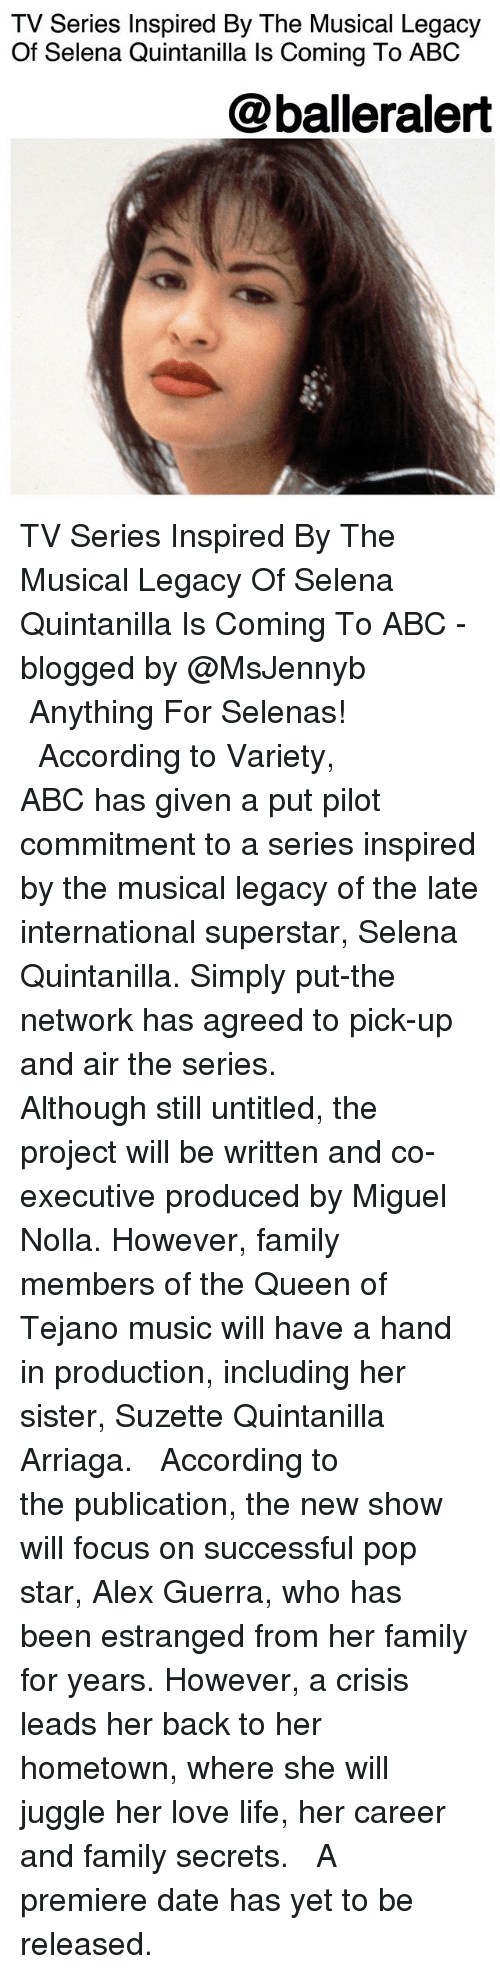 Abc, Family, and Life: TV Series Inspired By The Musical Legacy  Of Selena Quintanilla ls Coming To ABC  @balleralert TV Series Inspired By The Musical Legacy Of Selena Quintanilla Is Coming To ABC - blogged by @MsJennyb ⠀⠀⠀⠀⠀⠀⠀ ⠀⠀⠀⠀⠀⠀⠀ Anything For Selenas! ⠀⠀⠀⠀⠀⠀⠀ ⠀⠀⠀⠀⠀⠀⠀ According to Variety, ABC has given a put pilot commitment to a series inspired by the musical legacy of the late international superstar, Selena Quintanilla. Simply put-the network has agreed to pick-up and air the series. ⠀⠀⠀⠀⠀⠀⠀ ⠀⠀⠀⠀⠀⠀⠀ Although still untitled, the project will be written and co-executive produced by Miguel Nolla. However, family members of the Queen of Tejano music will have a hand in production, including her sister, Suzette Quintanilla Arriaga. ⠀⠀⠀⠀⠀⠀⠀ ⠀⠀⠀⠀⠀⠀⠀ According to the publication, the new show will focus on successful pop star, Alex Guerra, who has been estranged from her family for years. However, a crisis leads her back to her hometown, where she will juggle her love life, her career and family secrets. ⠀⠀⠀⠀⠀⠀⠀ ⠀⠀⠀⠀⠀⠀⠀ A premiere date has yet to be released.